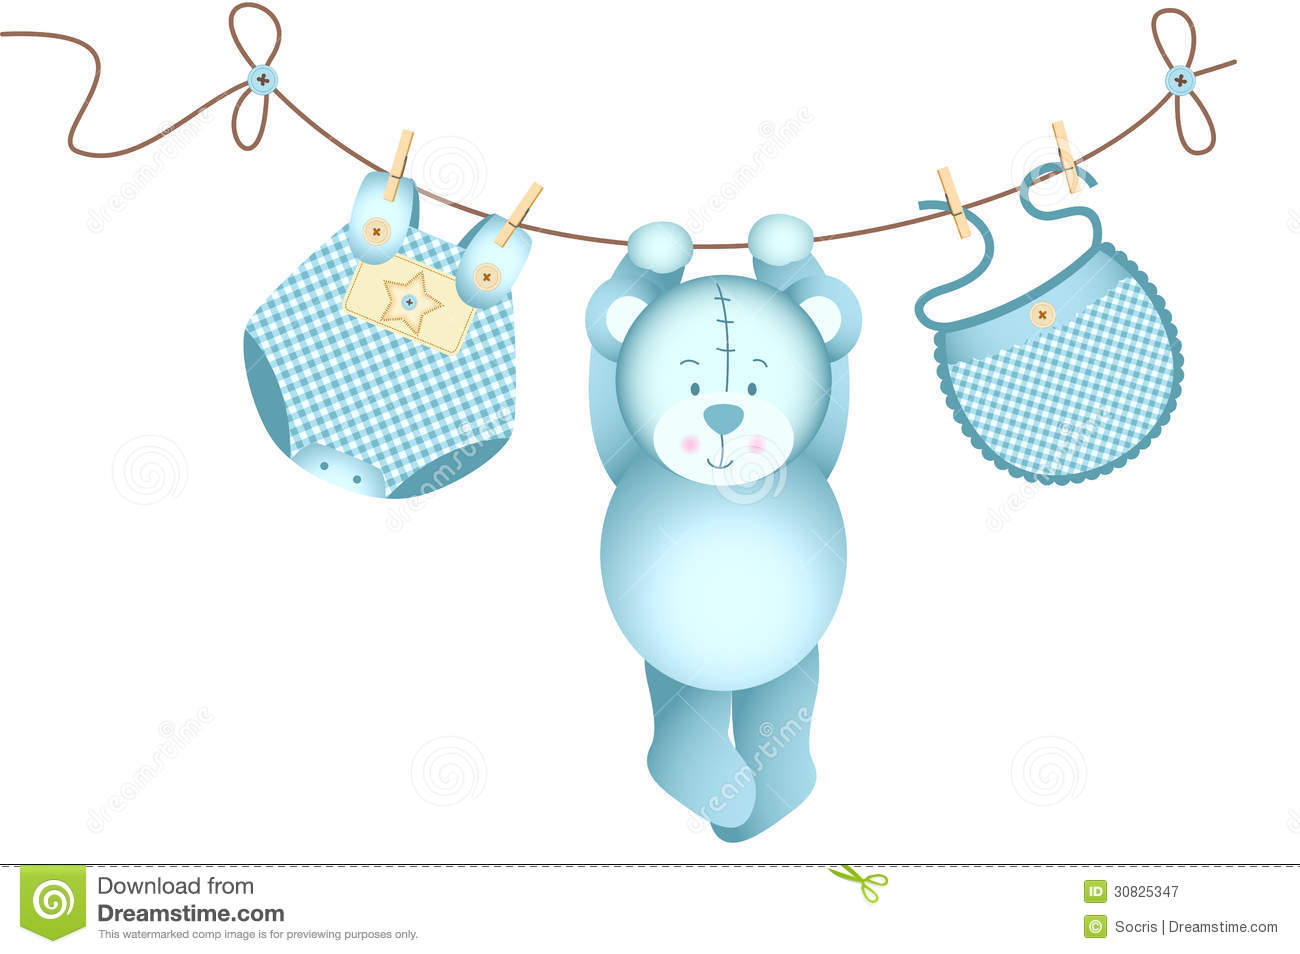 Baby boy teddy bear clip art - photo#26